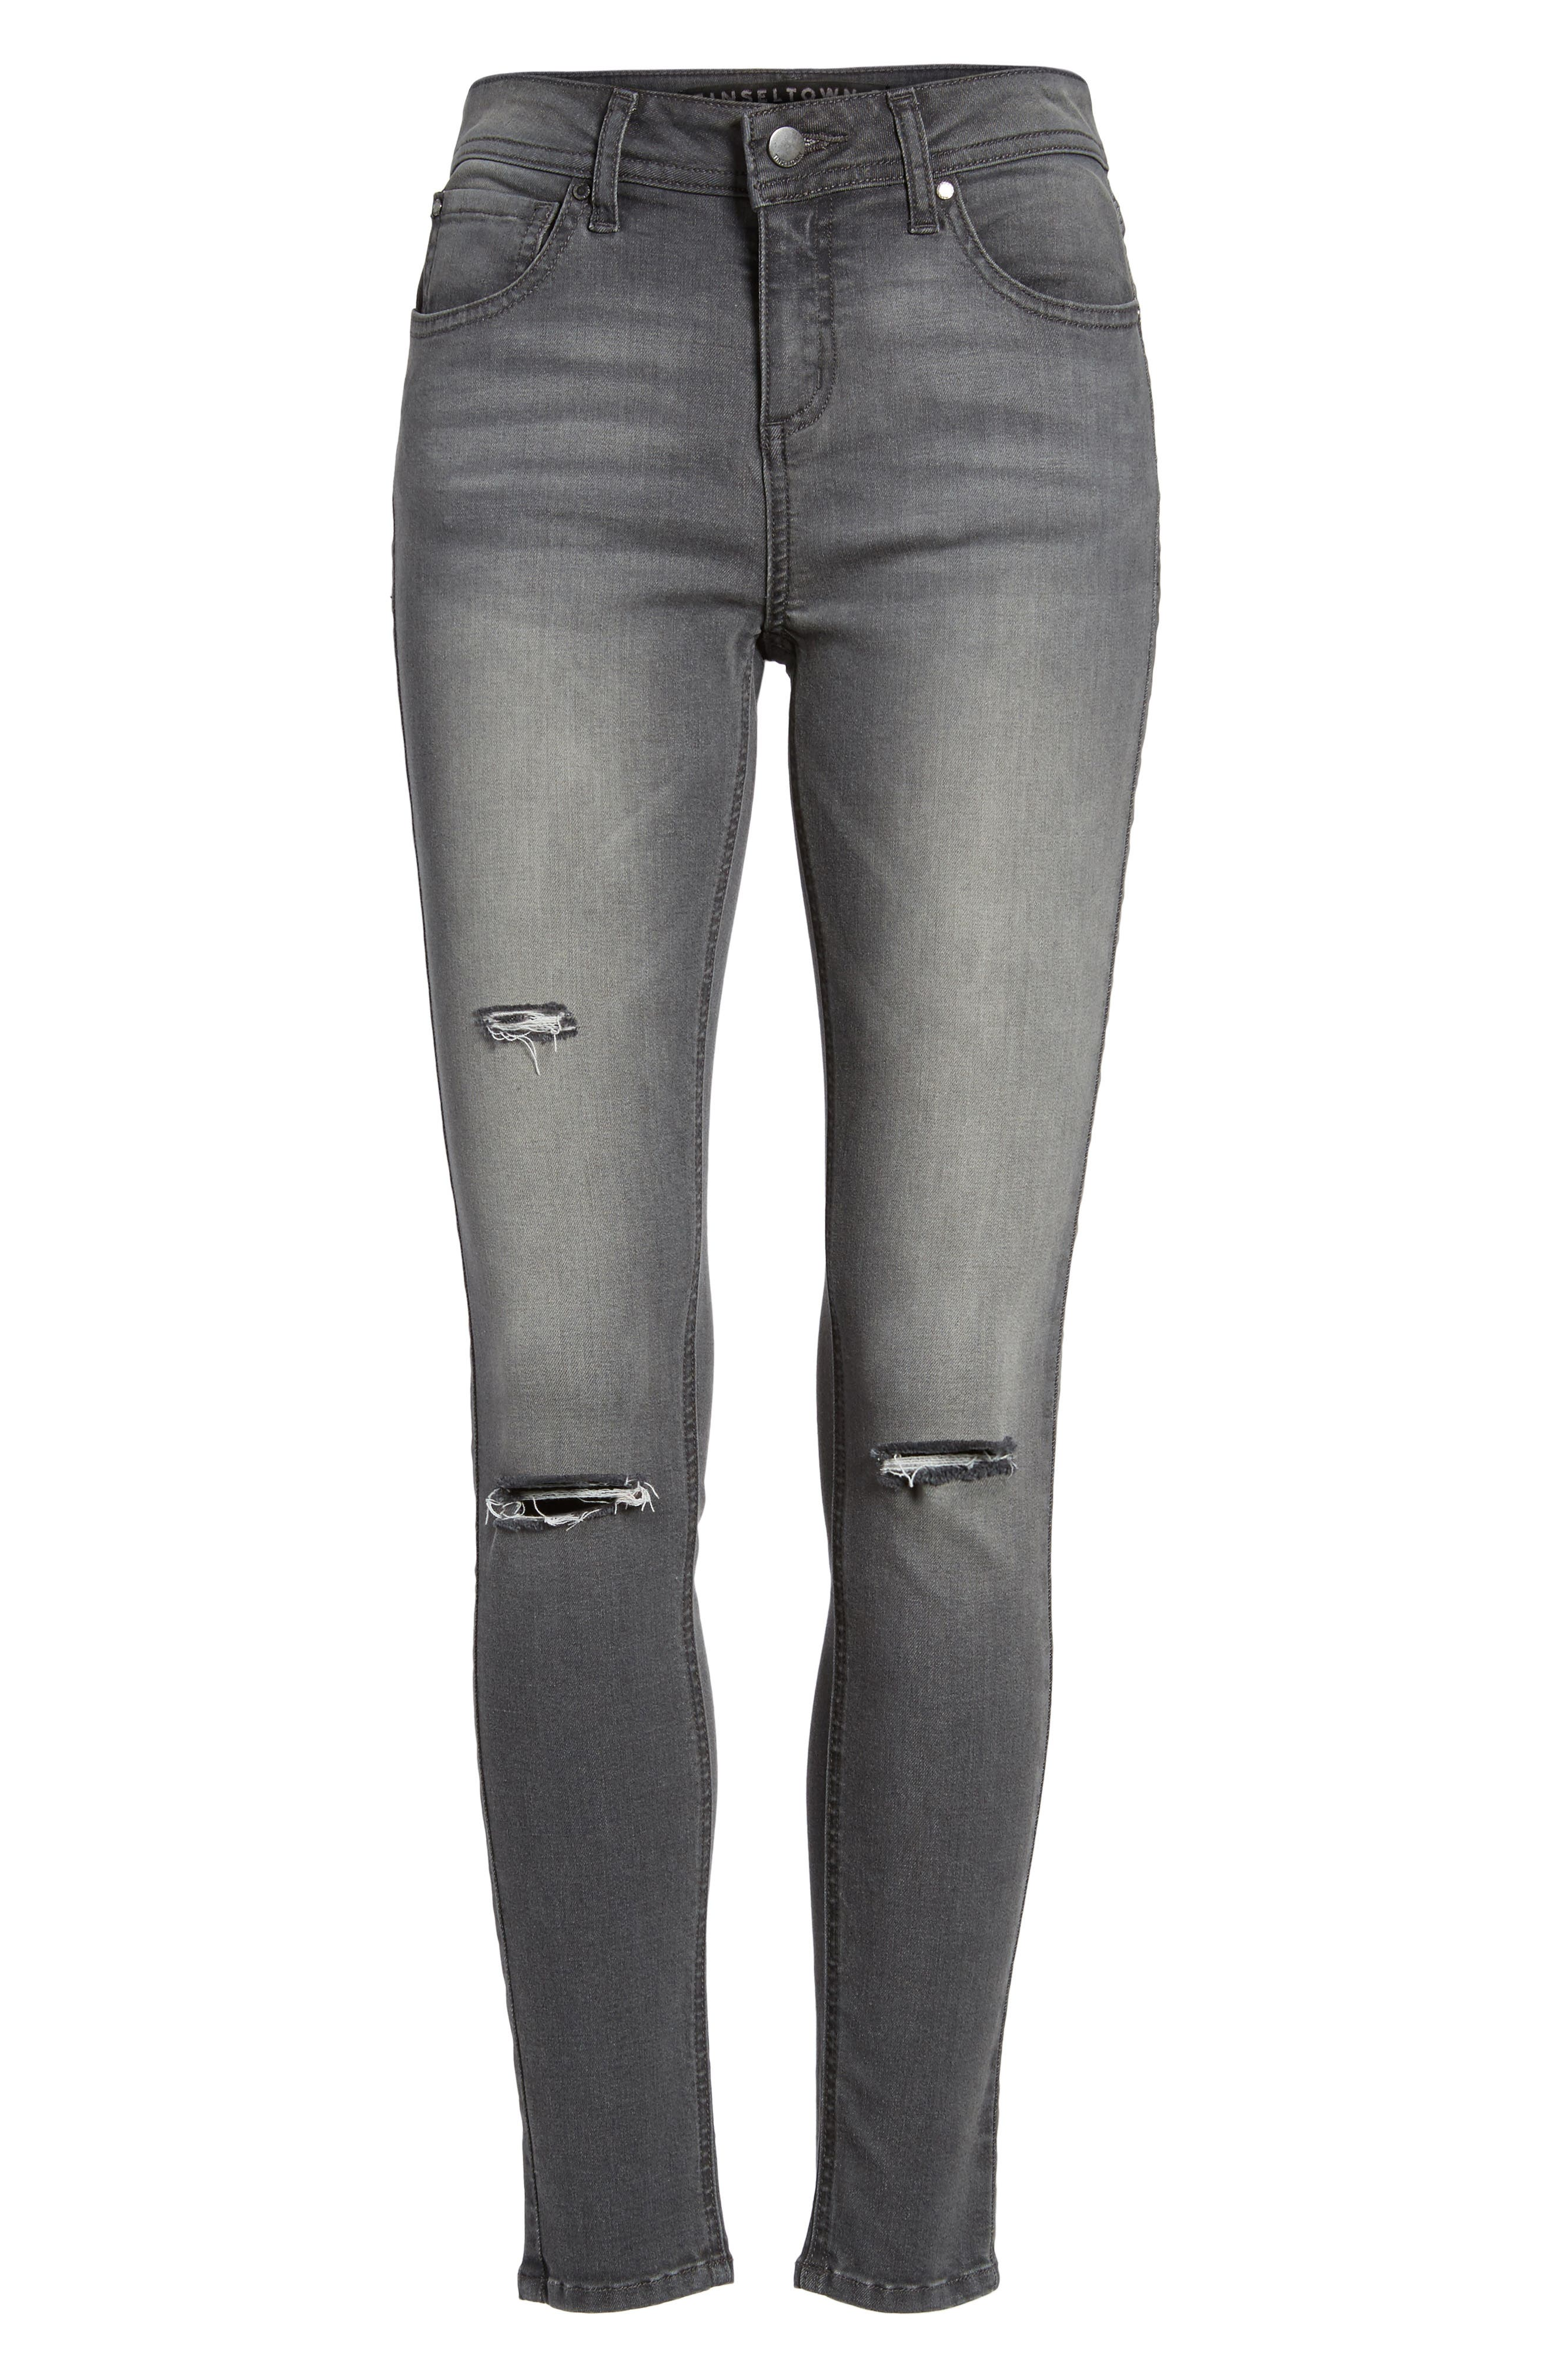 Ripped Skinny Jeans,                             Alternate thumbnail 6, color,                             REBELITE CHARCOAL